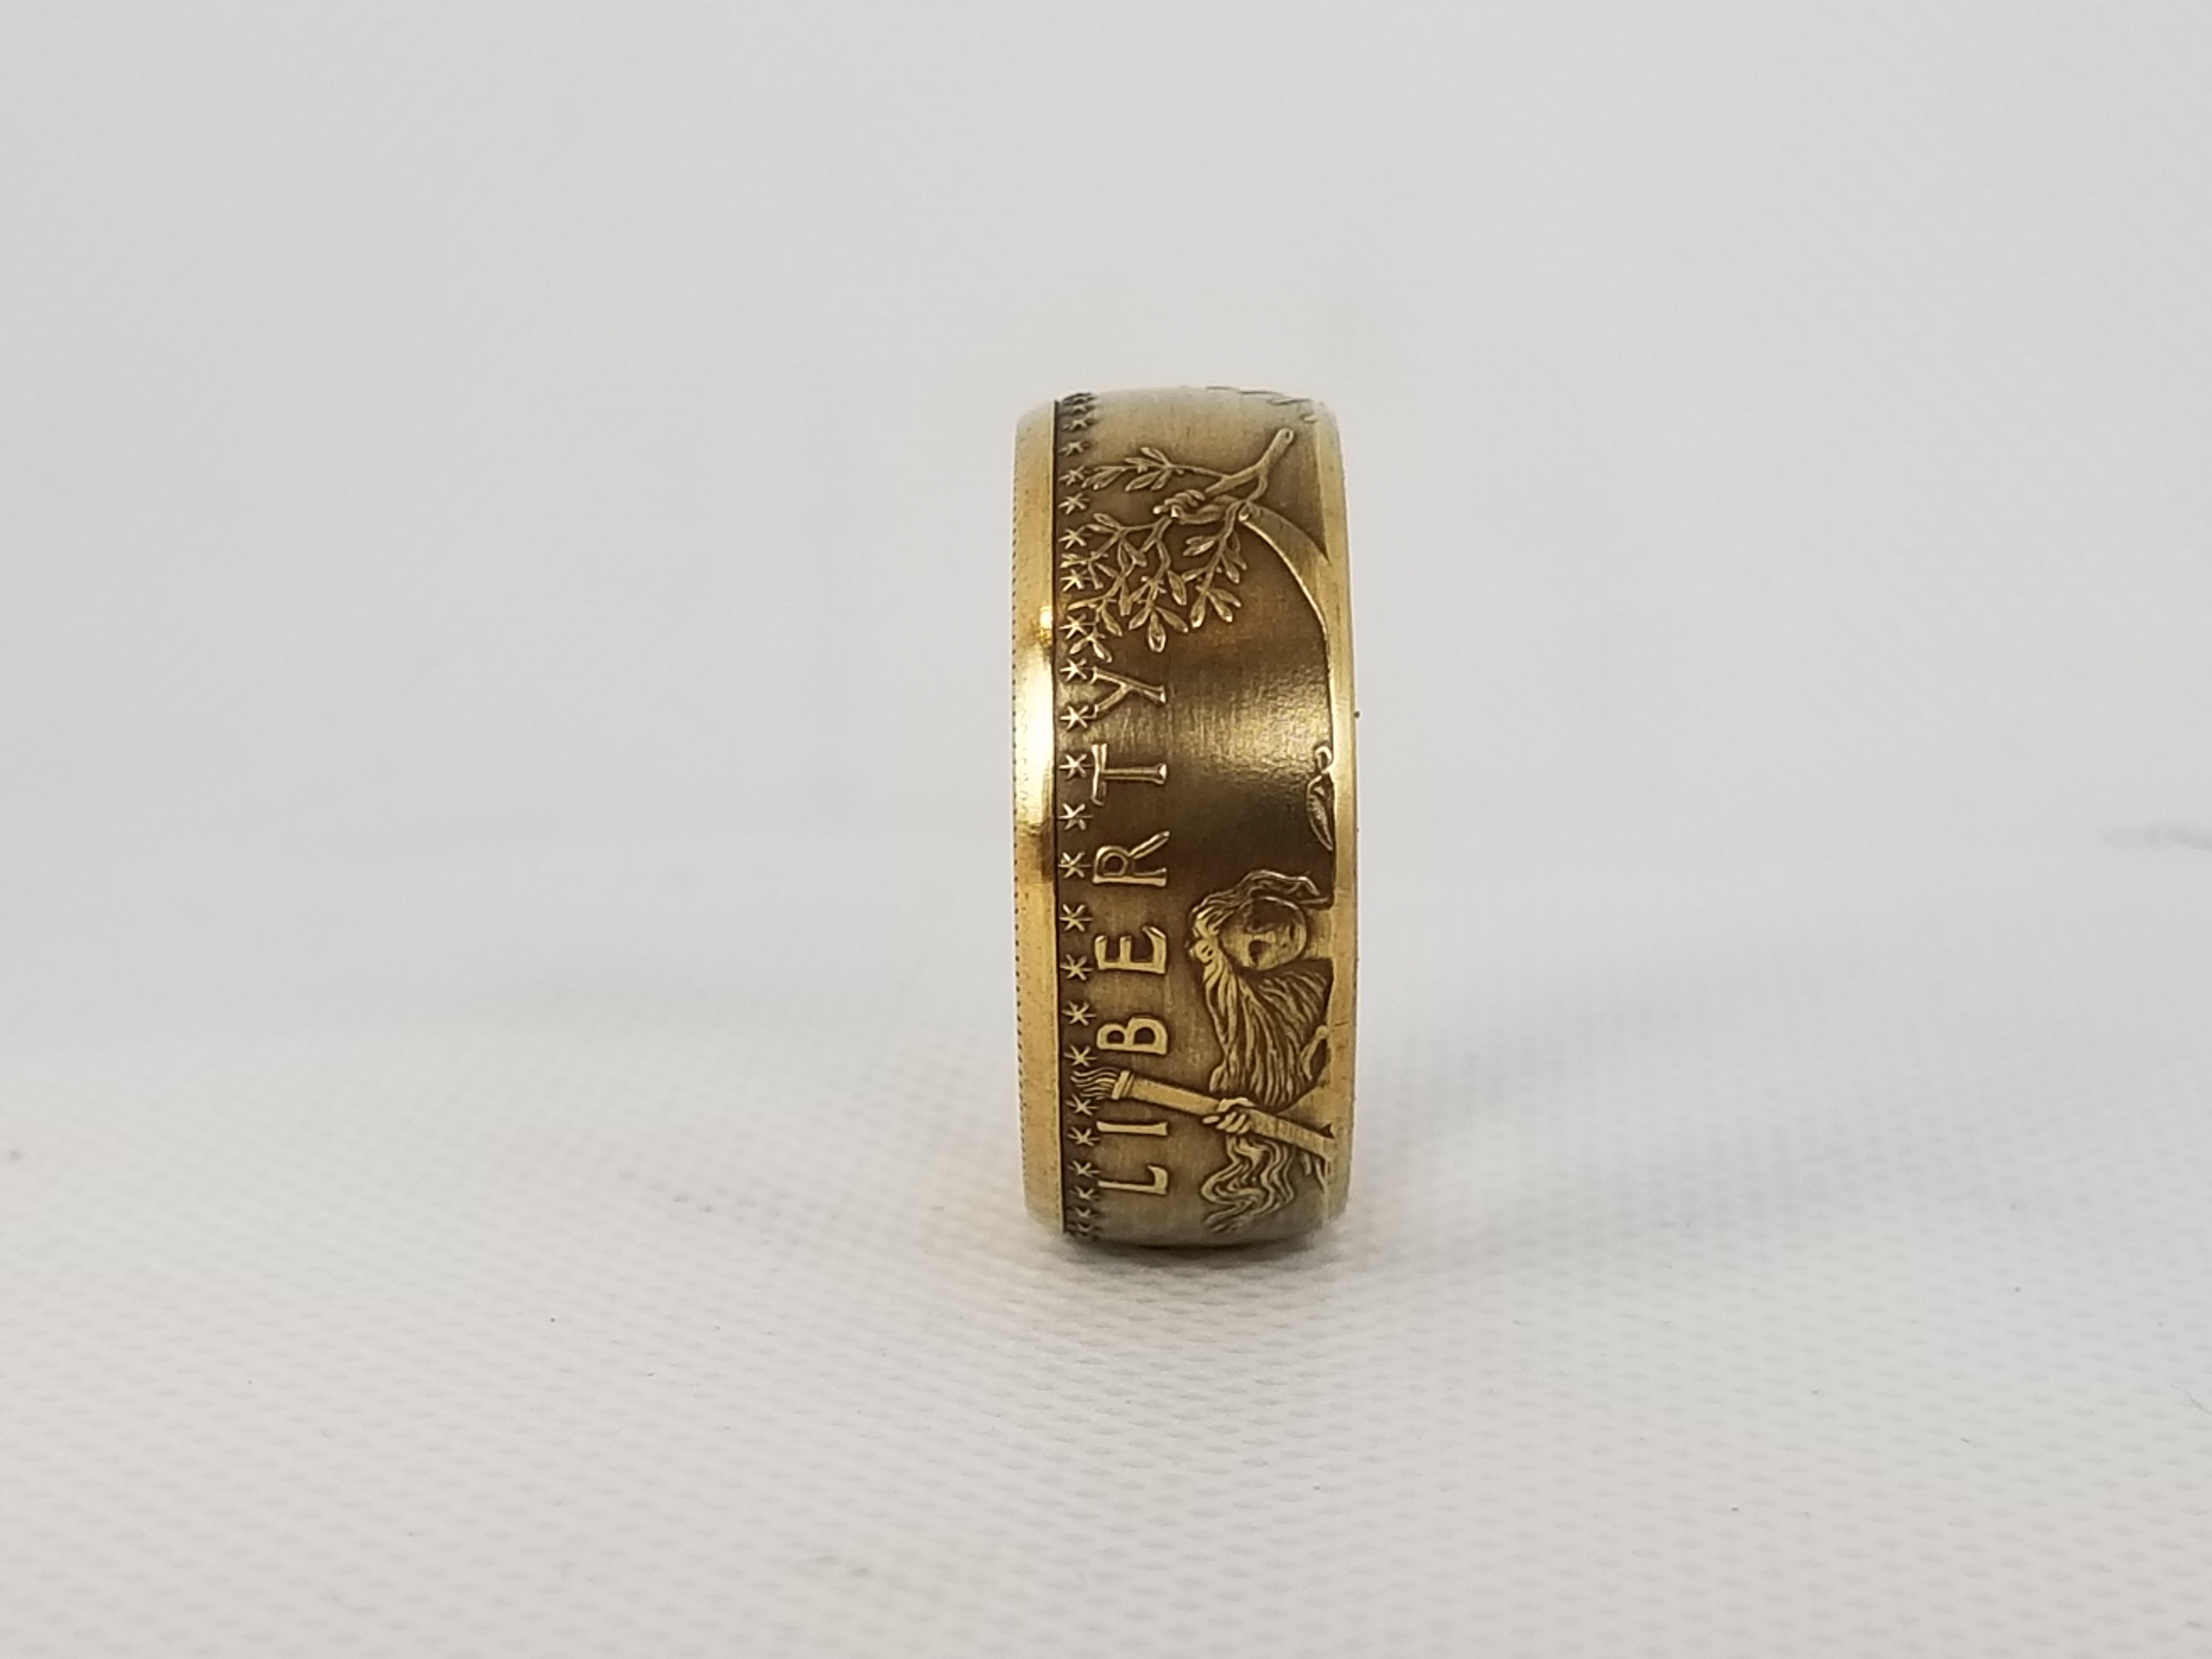 One Ounce Gold Eagle Coin Ring Coin Rings By The Mint